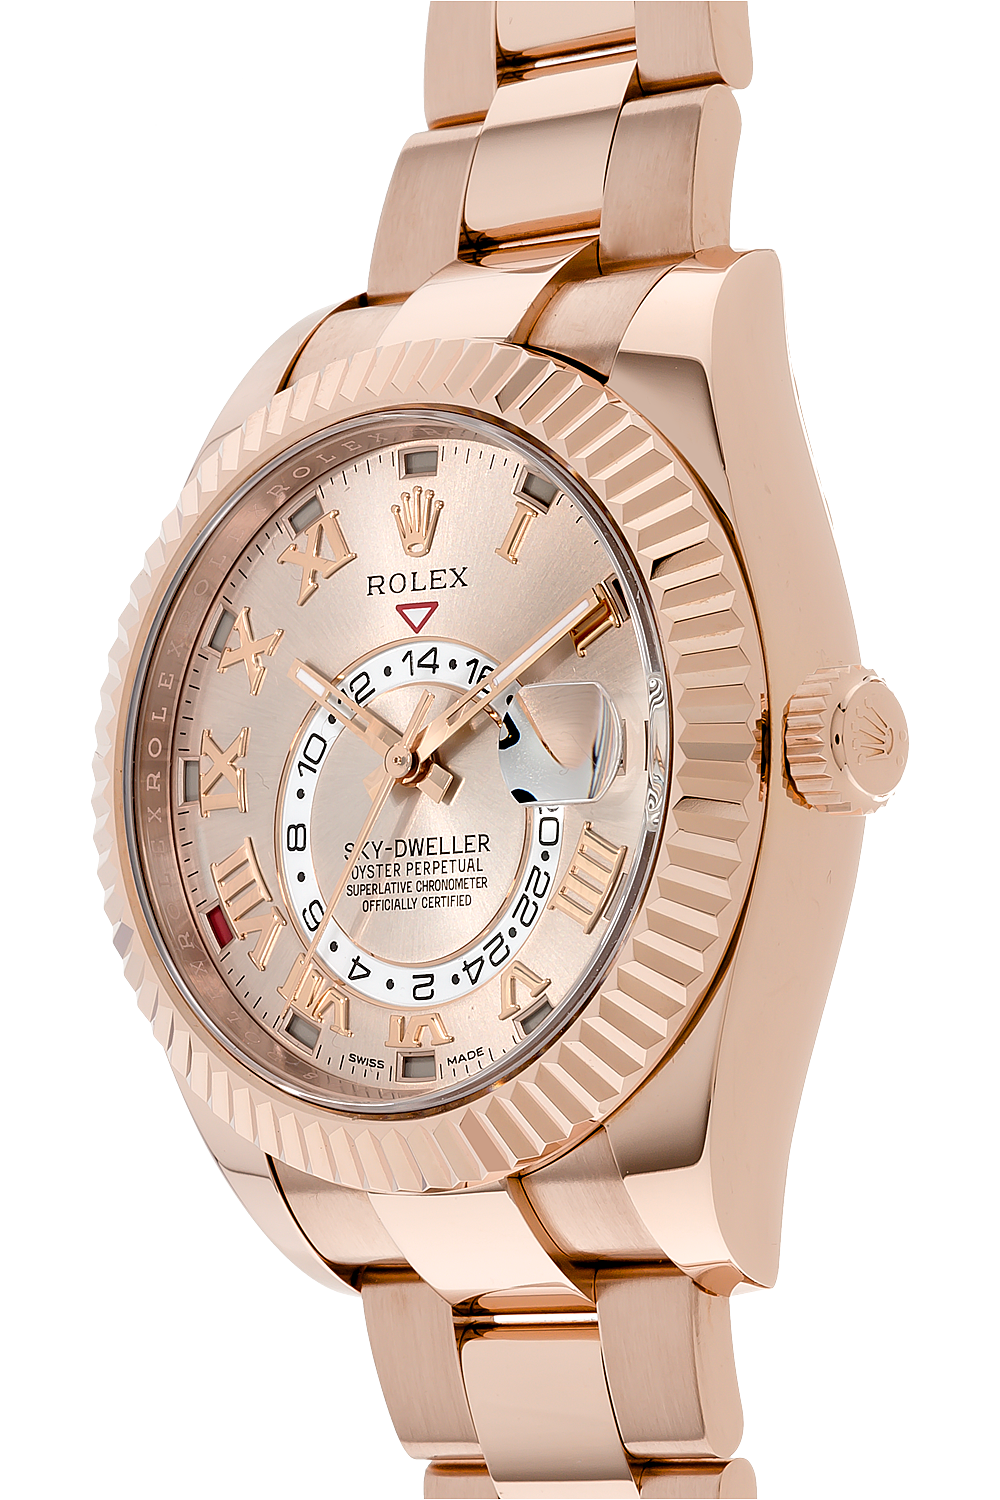 sky dweller rose gold automatic